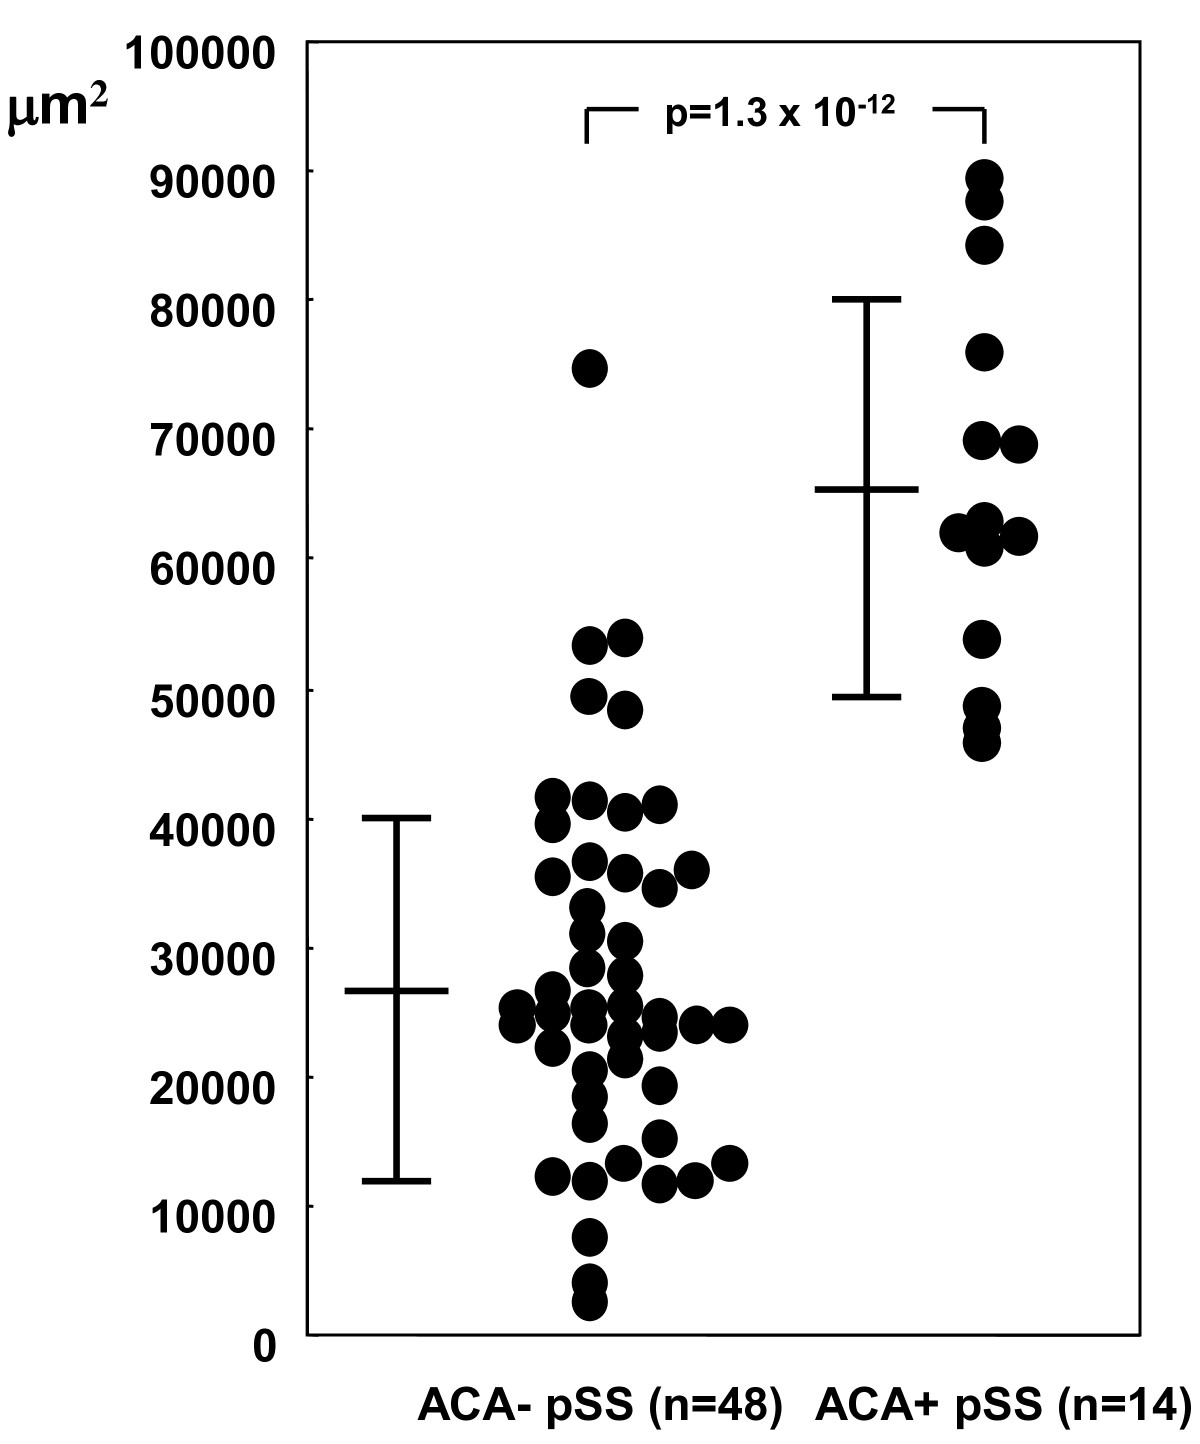 https://static-content.springer.com/image/art%3A10.1186%2F1471-2474-11-140/MediaObjects/12891_2010_Article_886_Fig2_HTML.jpg